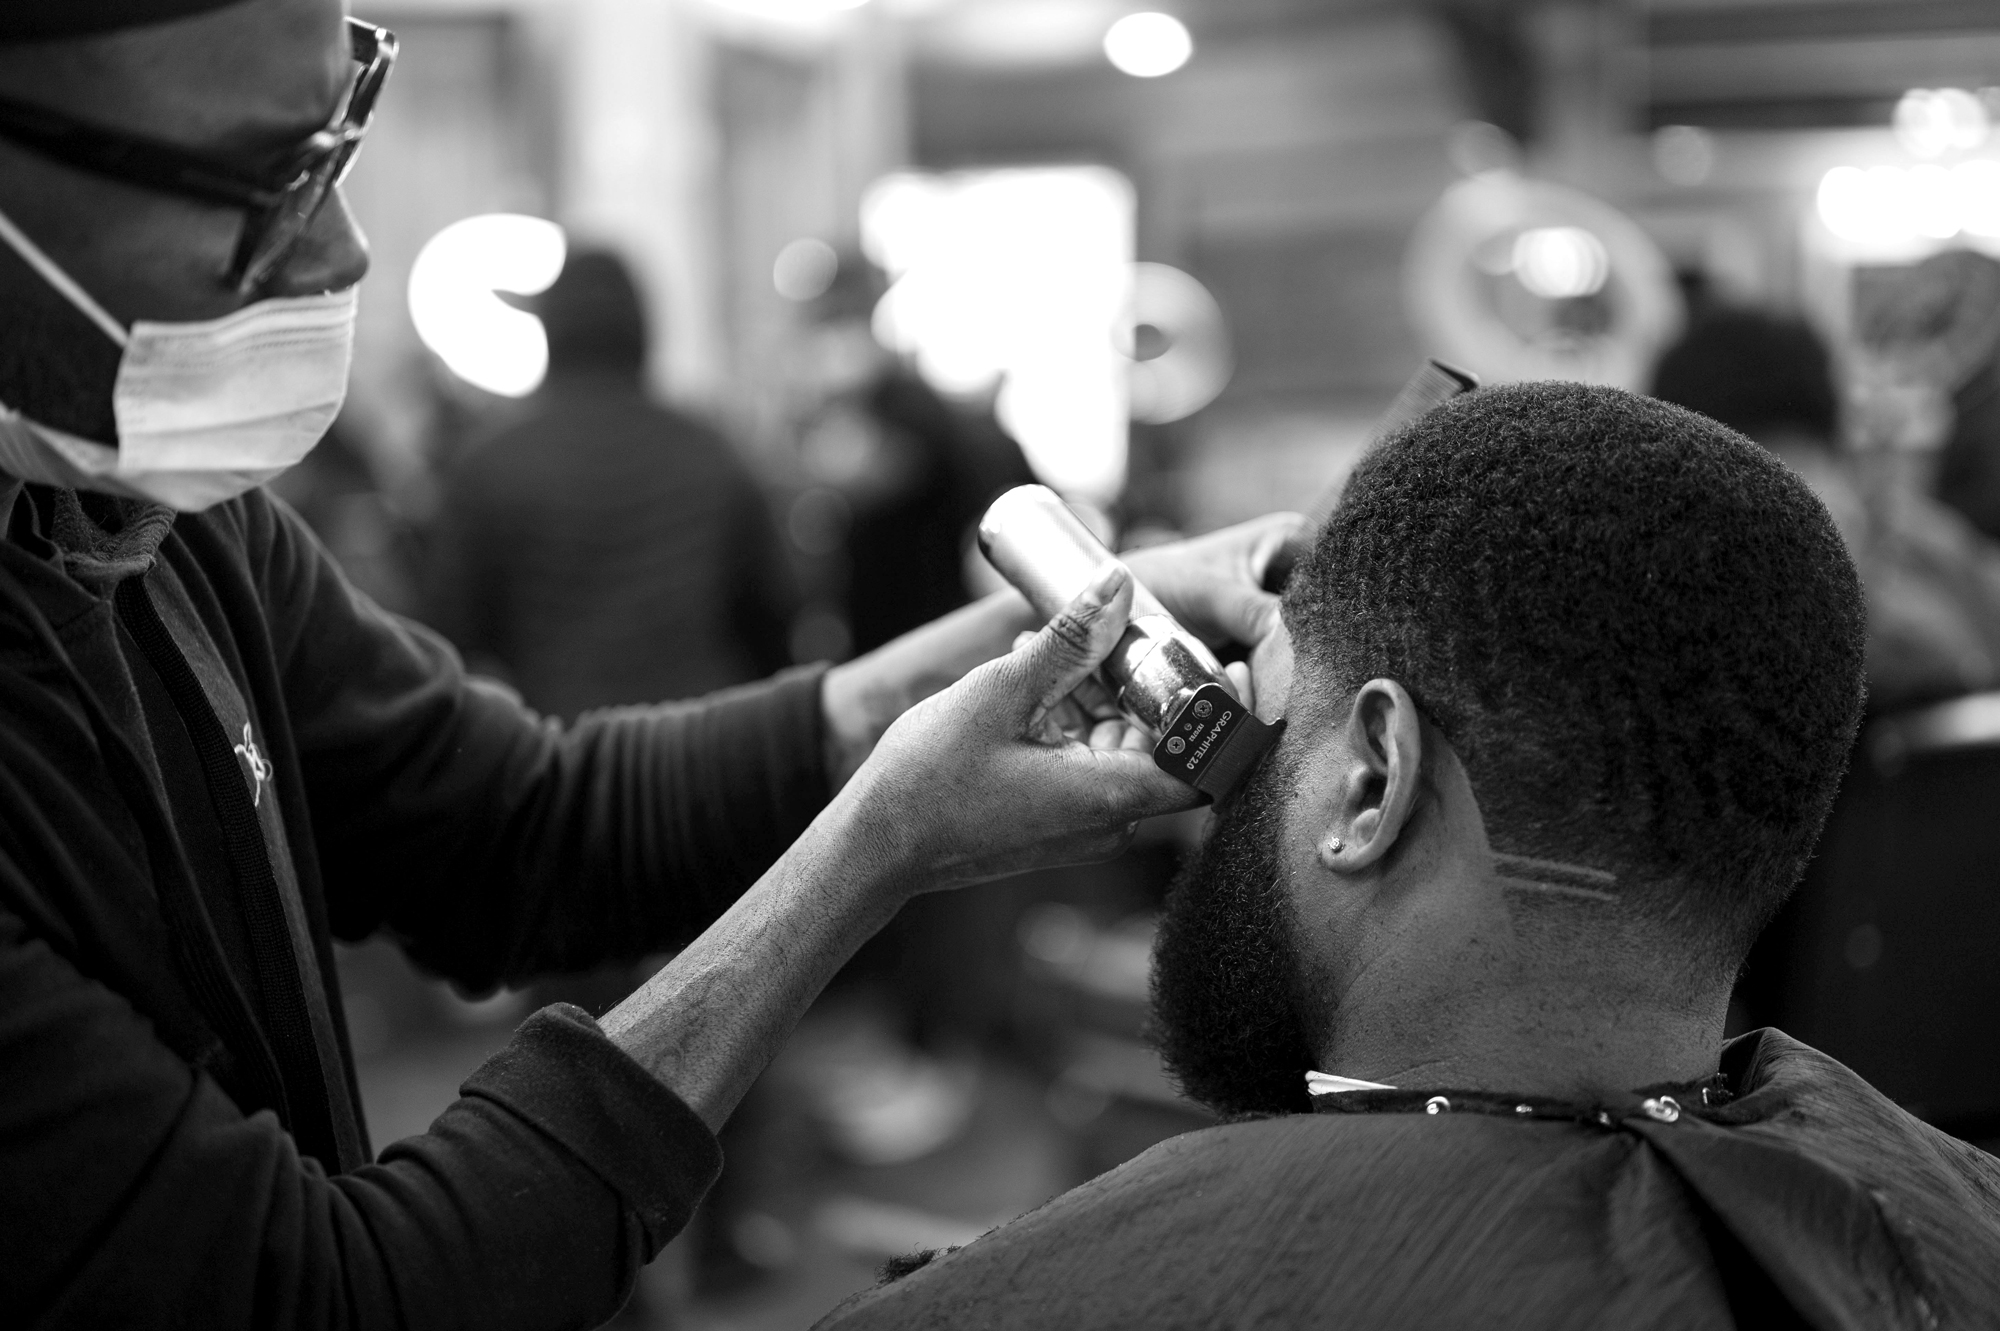 A black and white photo of one person using clippers to cut another person's hair. Both people are dark-skinned, and the person getting their hair cut has short hair and a beard. The back of their head is facing us, and they're wearing a black hair-cutting apron and a diamond earring in their left ear. The person cutting their hair is wearing a black, long-sleeved shirt and a white mask. Photo by Katie Sikora.